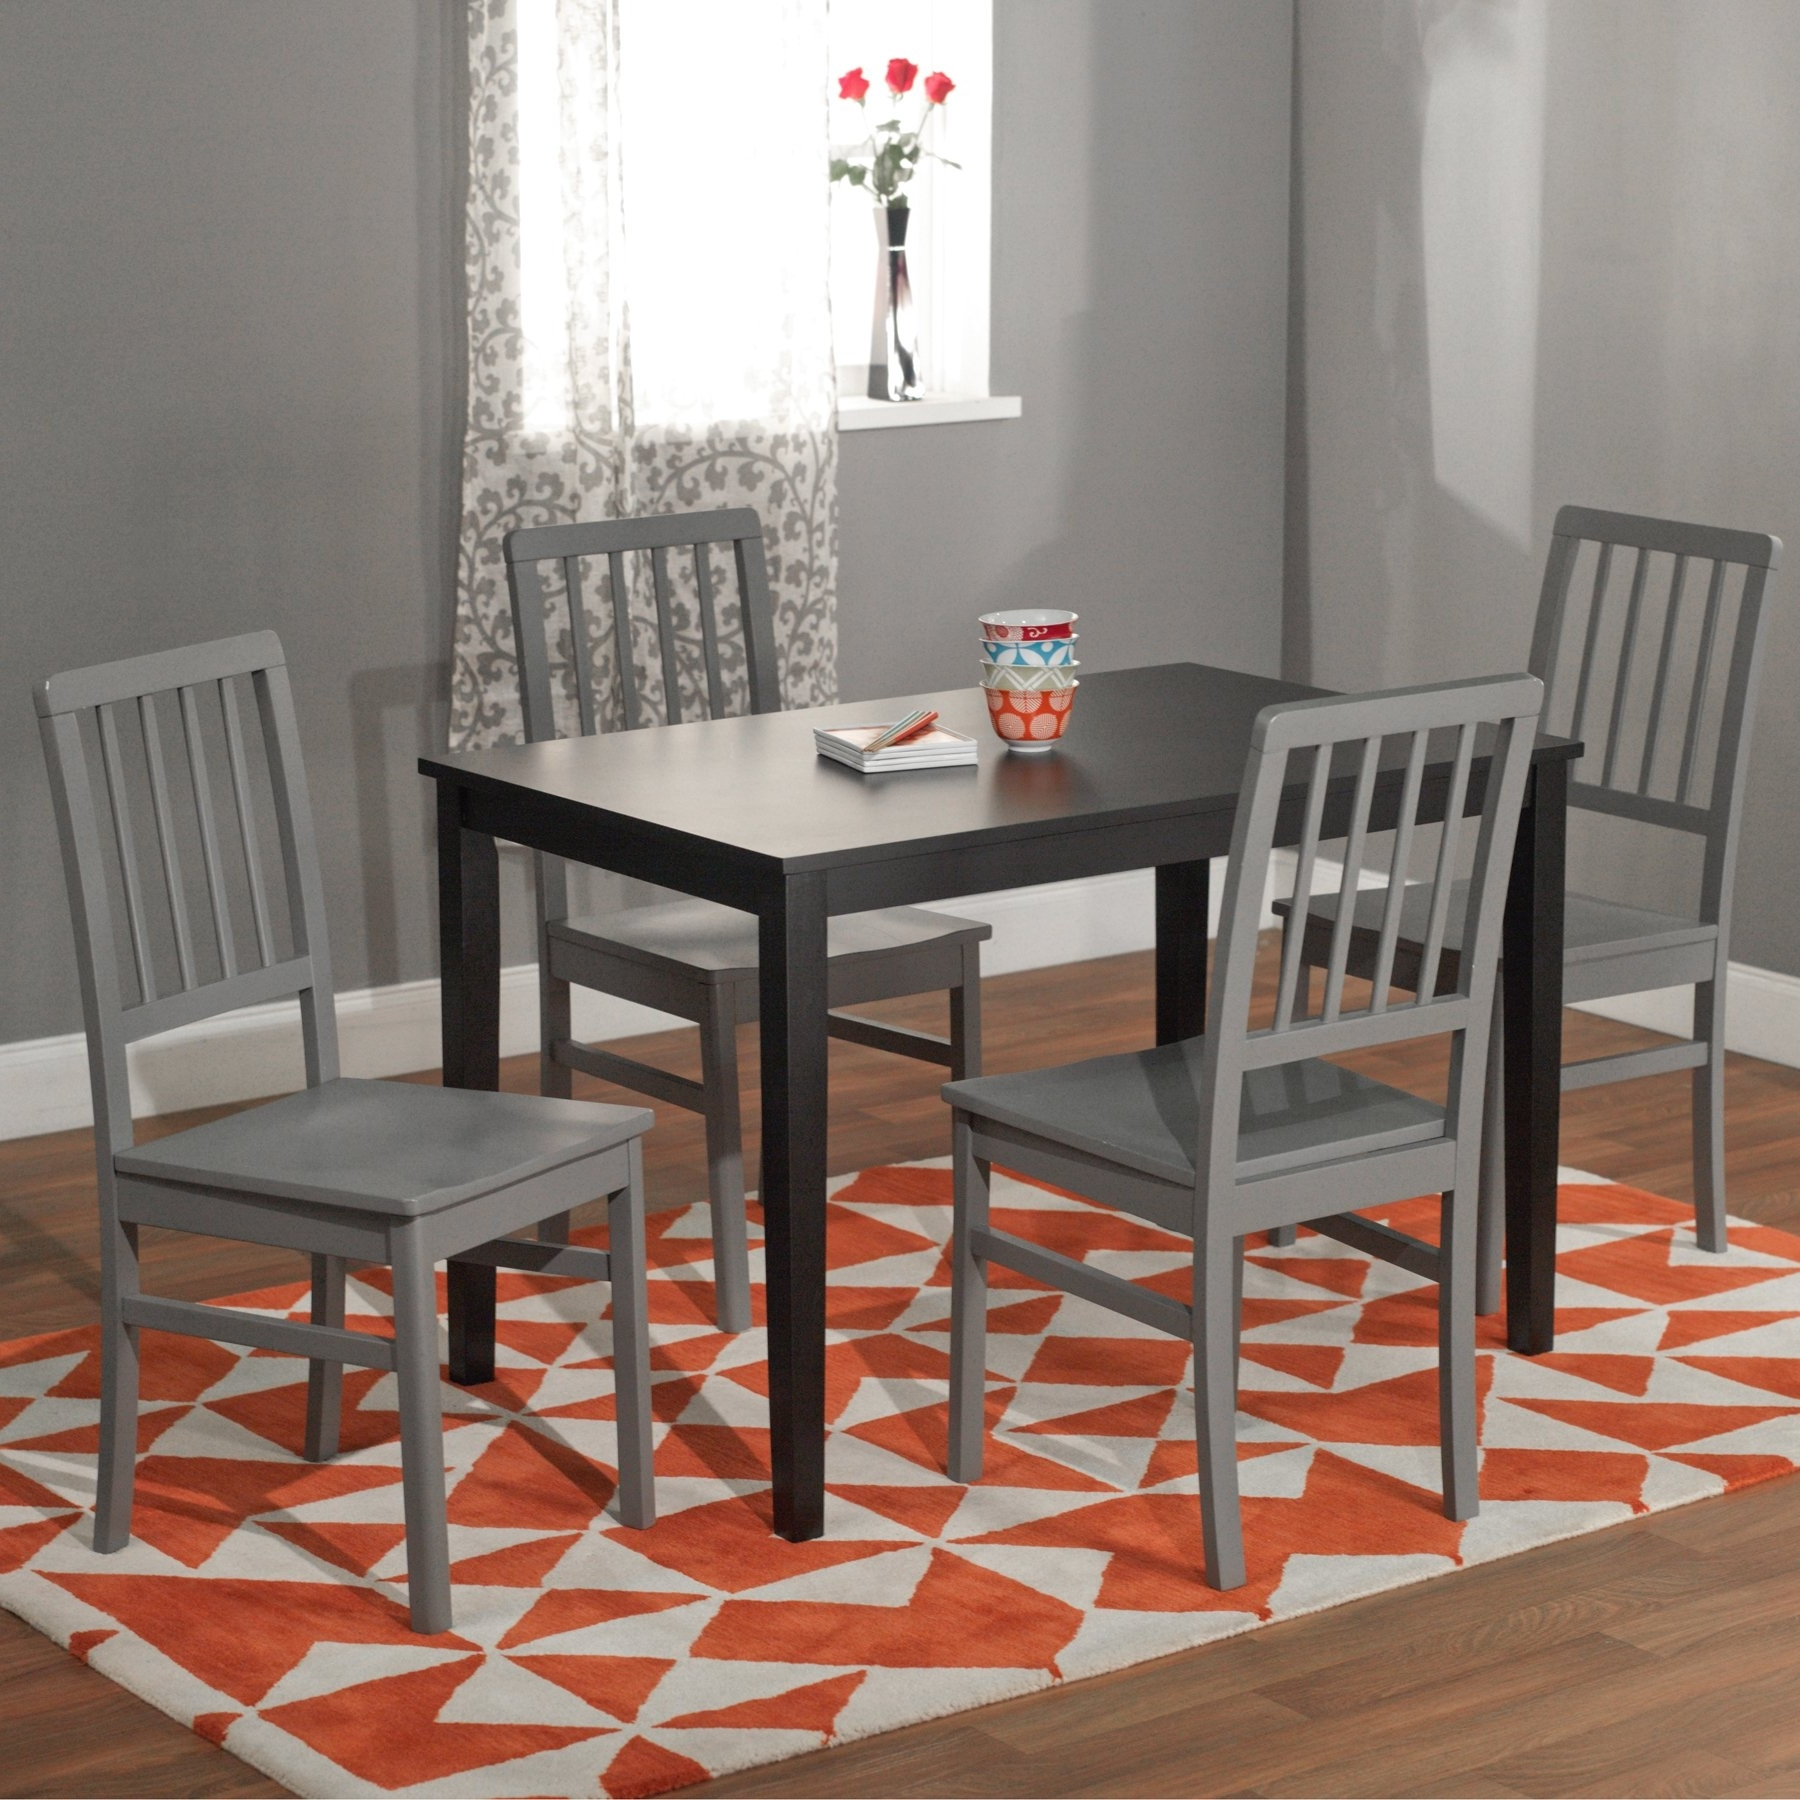 Most Recently Released Camden Dining Chairs In Shop Simple Living Camden Dining Chair (Set Of 4) – Free Shipping (View 17 of 20)